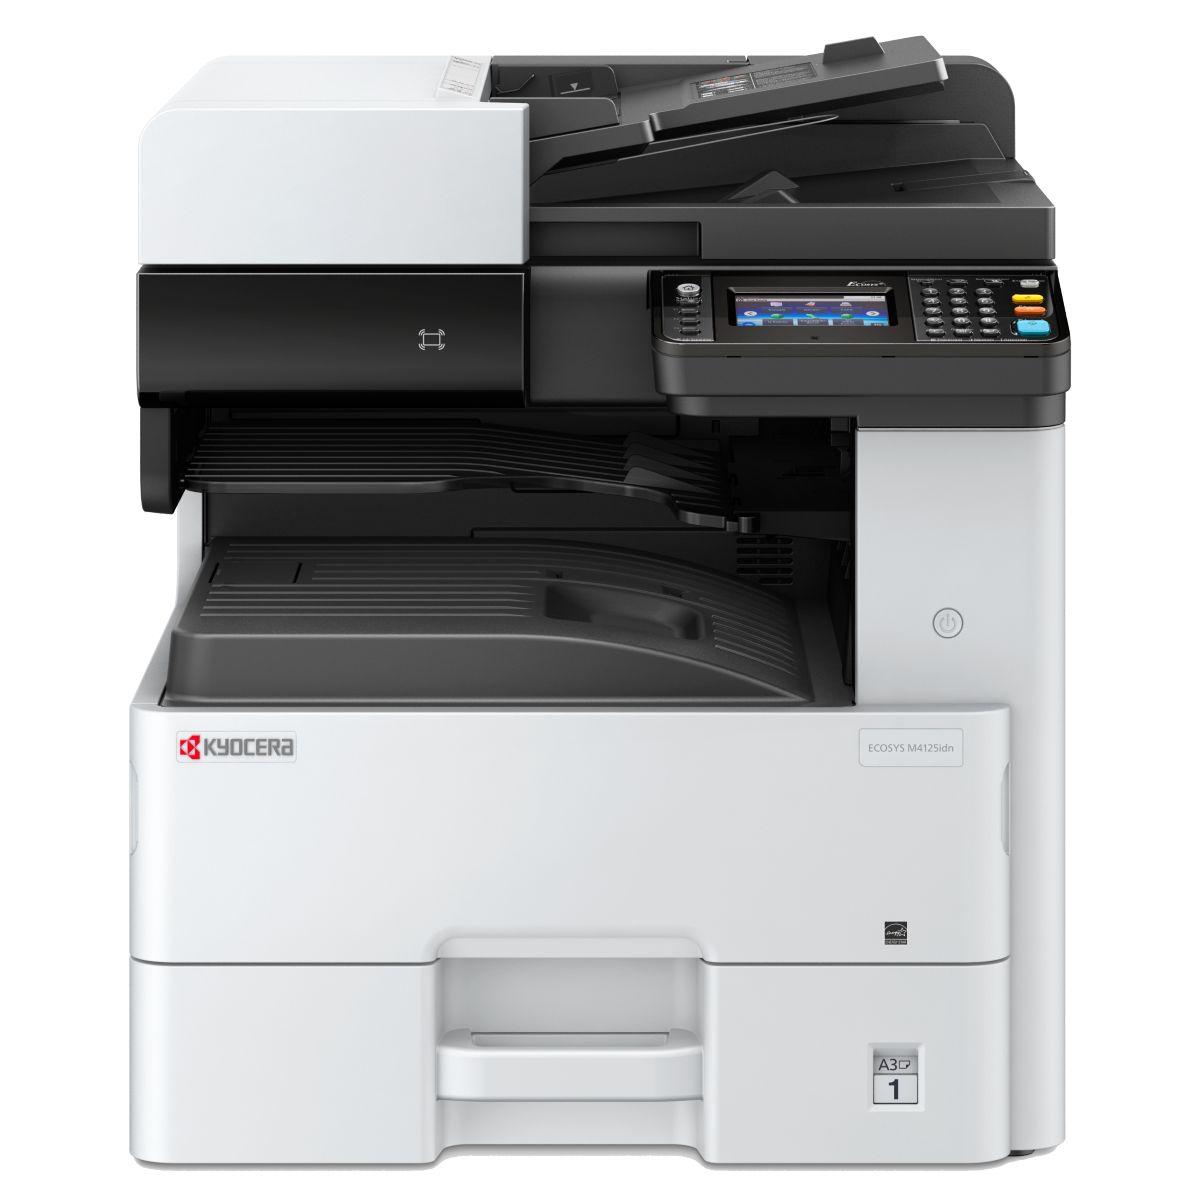 Kyocera M4125idn Multifunction Black & White A3 Printer